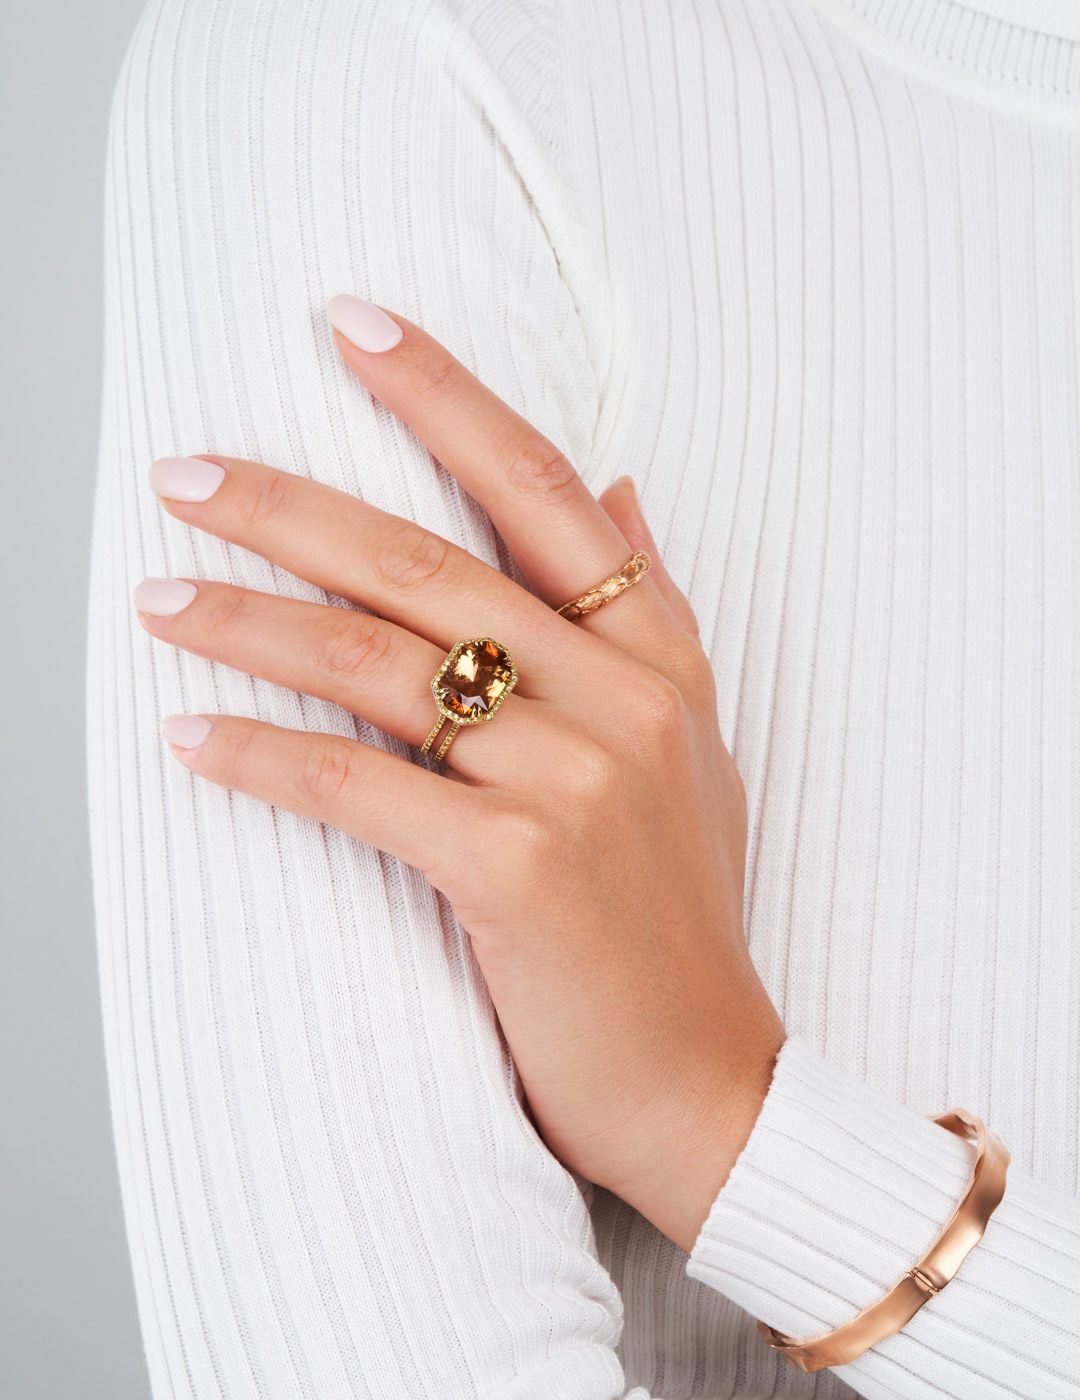 mish_products_rings_Arden-Plychrm Tourm-Ring-2